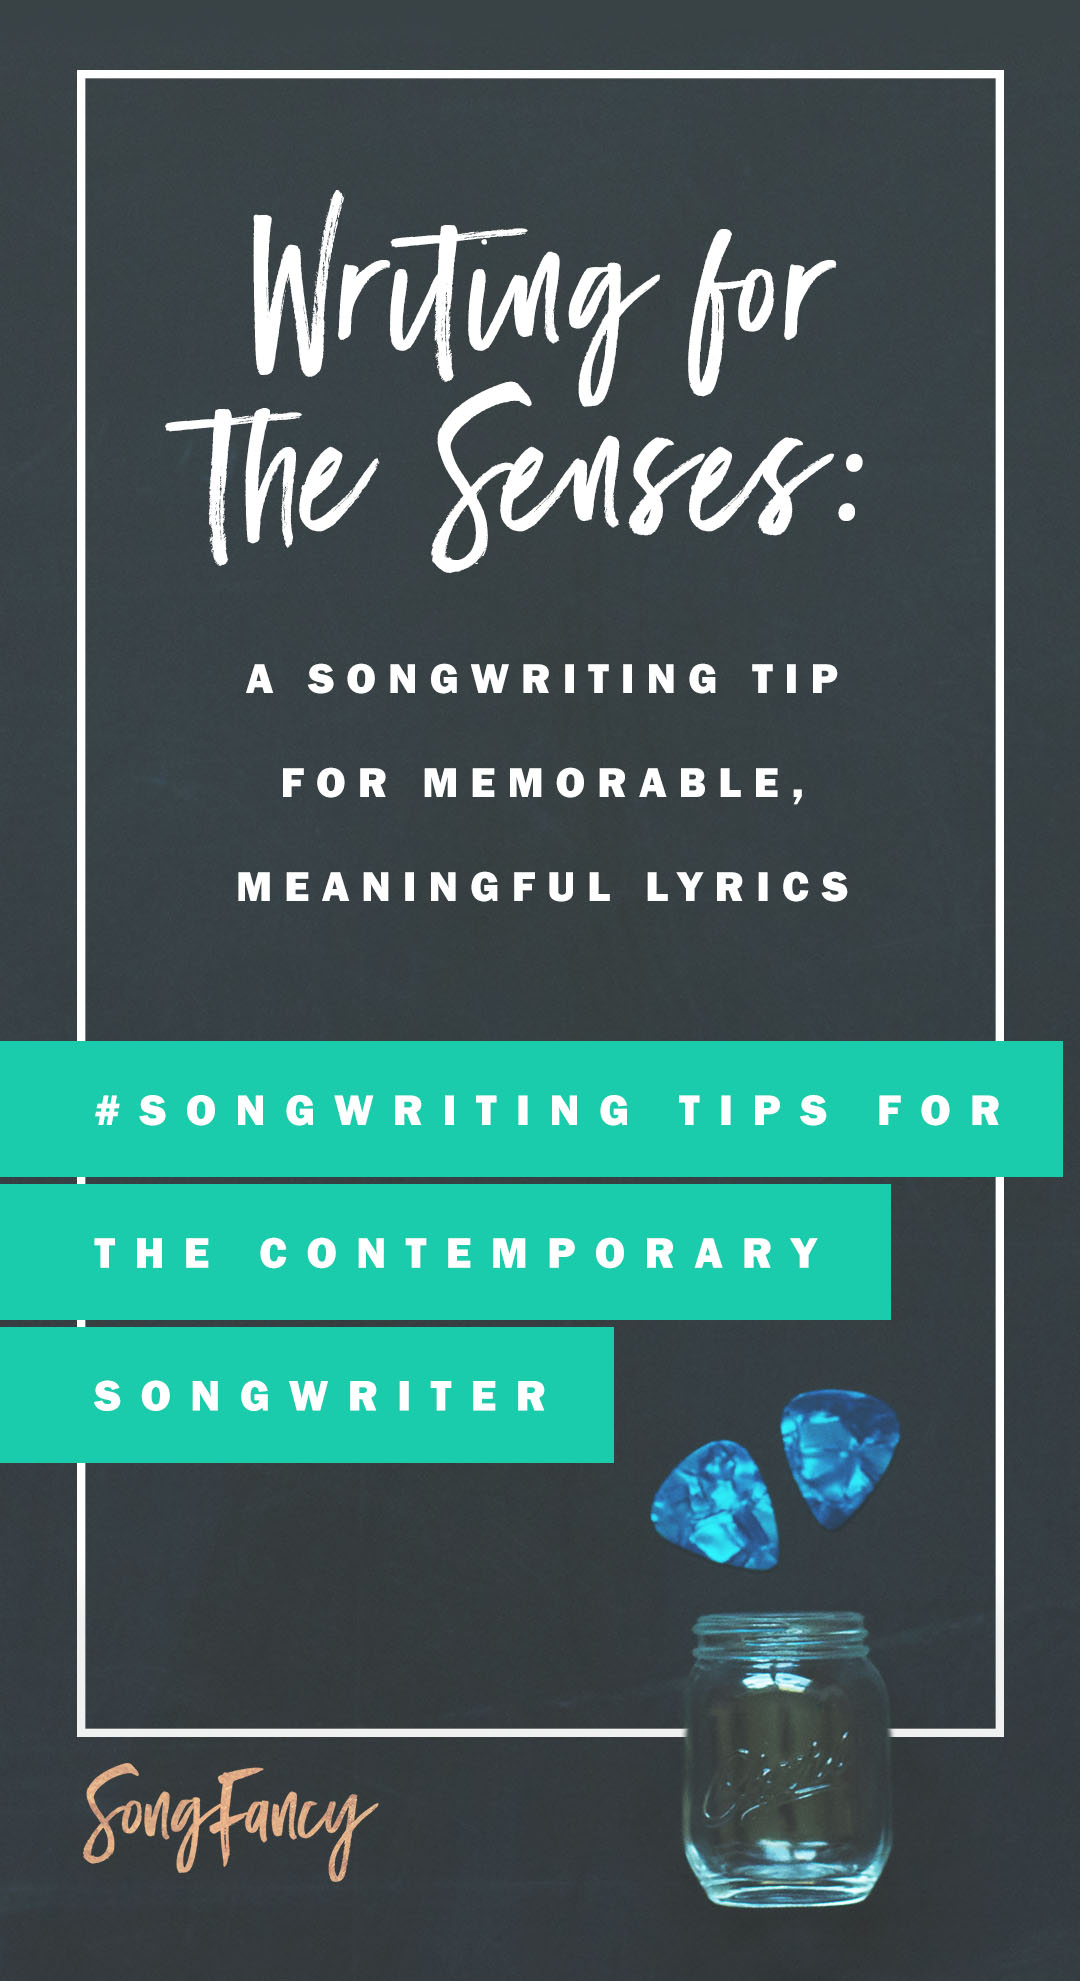 Songwriting tip! Here's how to write better, more meaningful lyrics using all five of our senses. Show, don't tell! | SongFancy.com